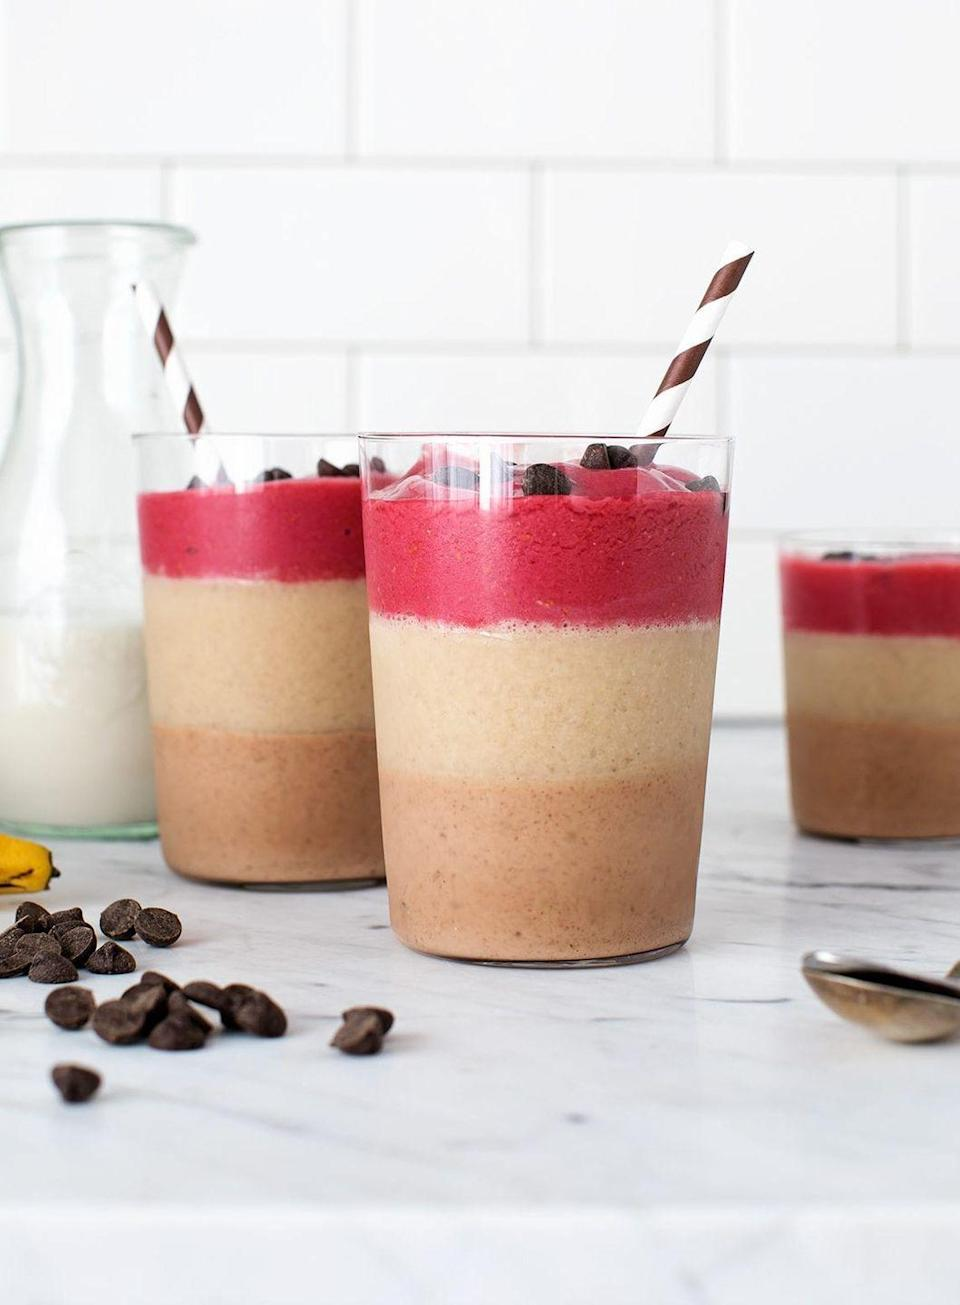 """<p>This smoothie will make you feel fancy AF: The first layer is chocolate almond butter, the second is banana vanilla, and the third is red berry. </p><p><a class=""""link rapid-noclick-resp"""" href=""""https://www.loveandlemons.com/3-layer-fruit-smoothie/"""" rel=""""nofollow noopener"""" target=""""_blank"""" data-ylk=""""slk:Get the recipe"""">Get the recipe</a></p>"""